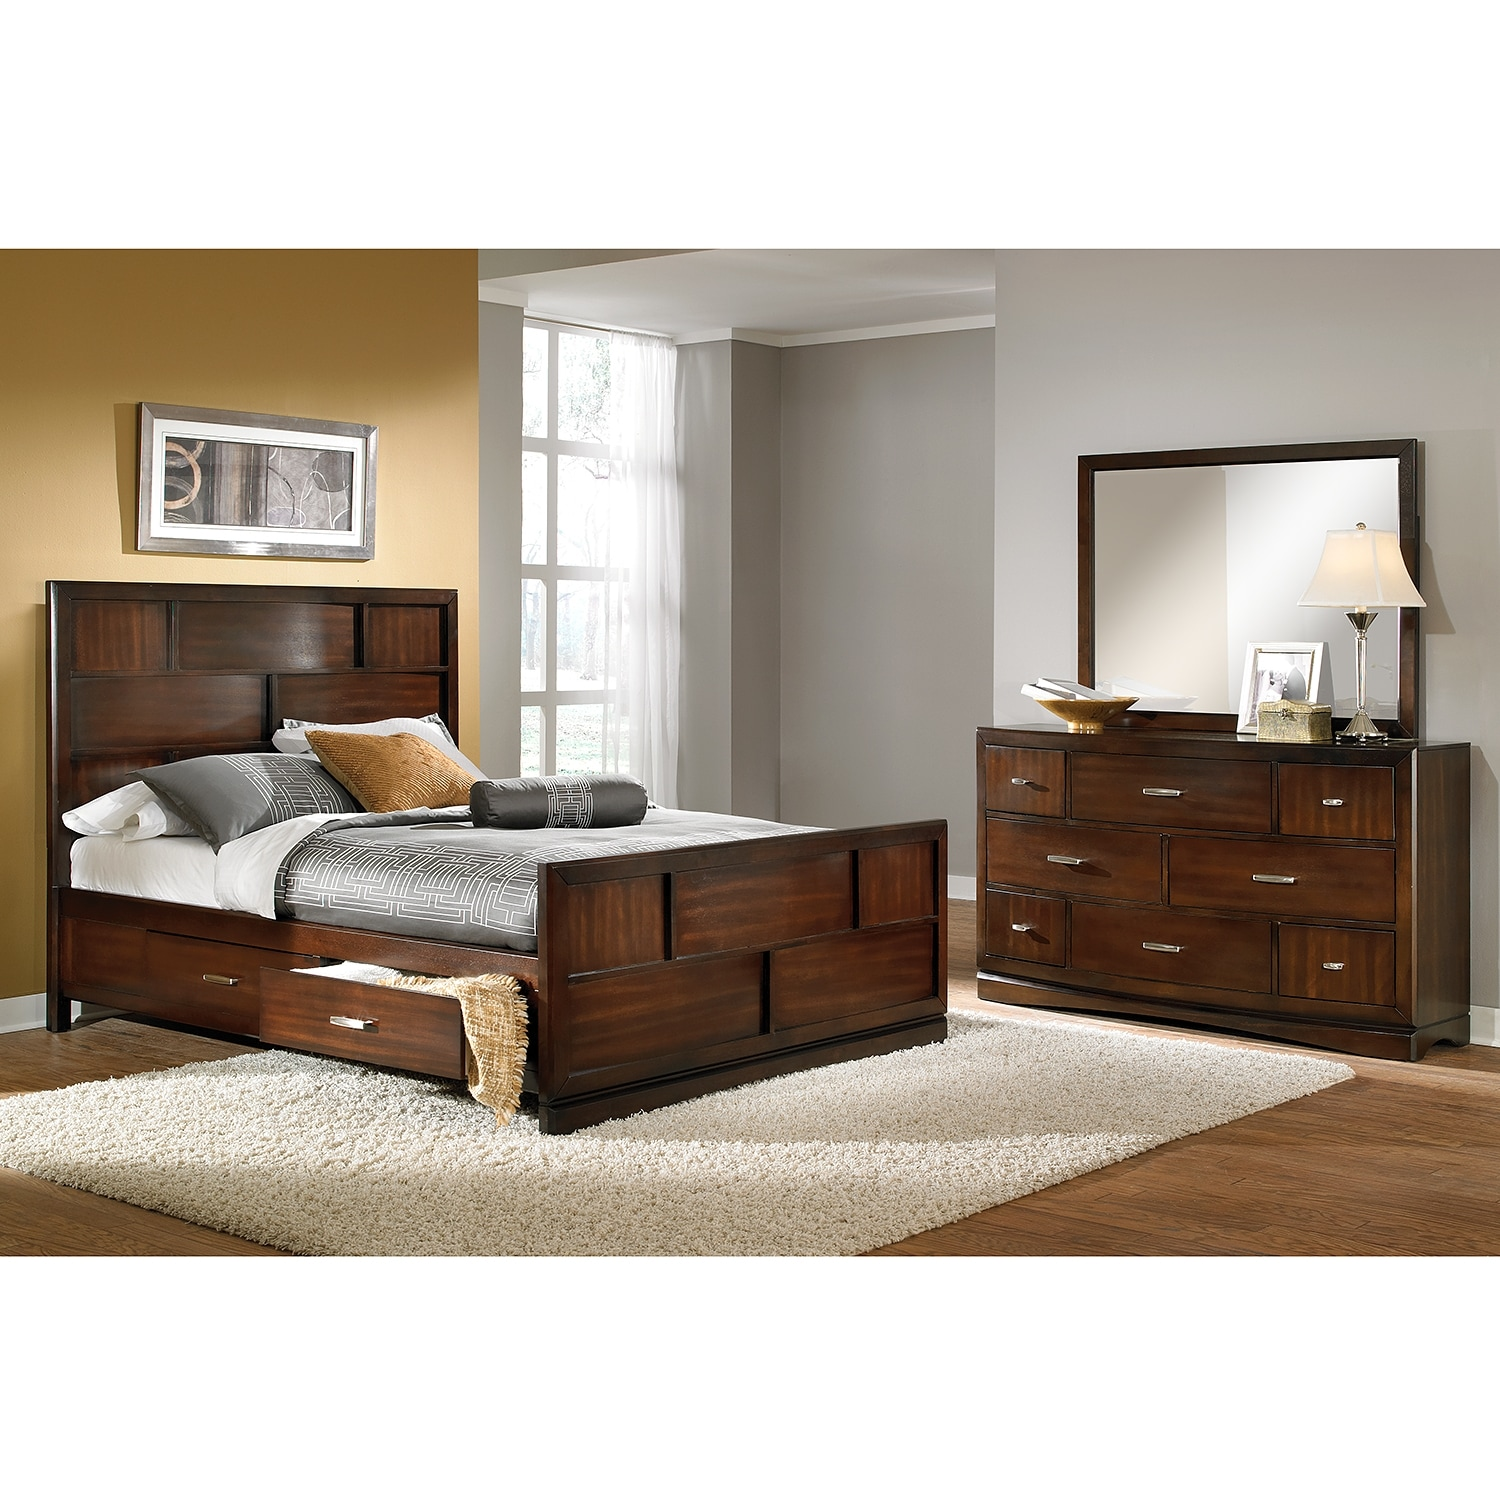 Bedroom Furniture: Toronto 5-Piece King Storage Bedroom Set